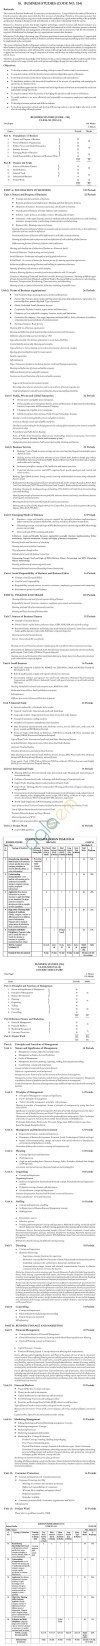 CBSE Class XI / XII Business Studies Syllabus 2014   2015